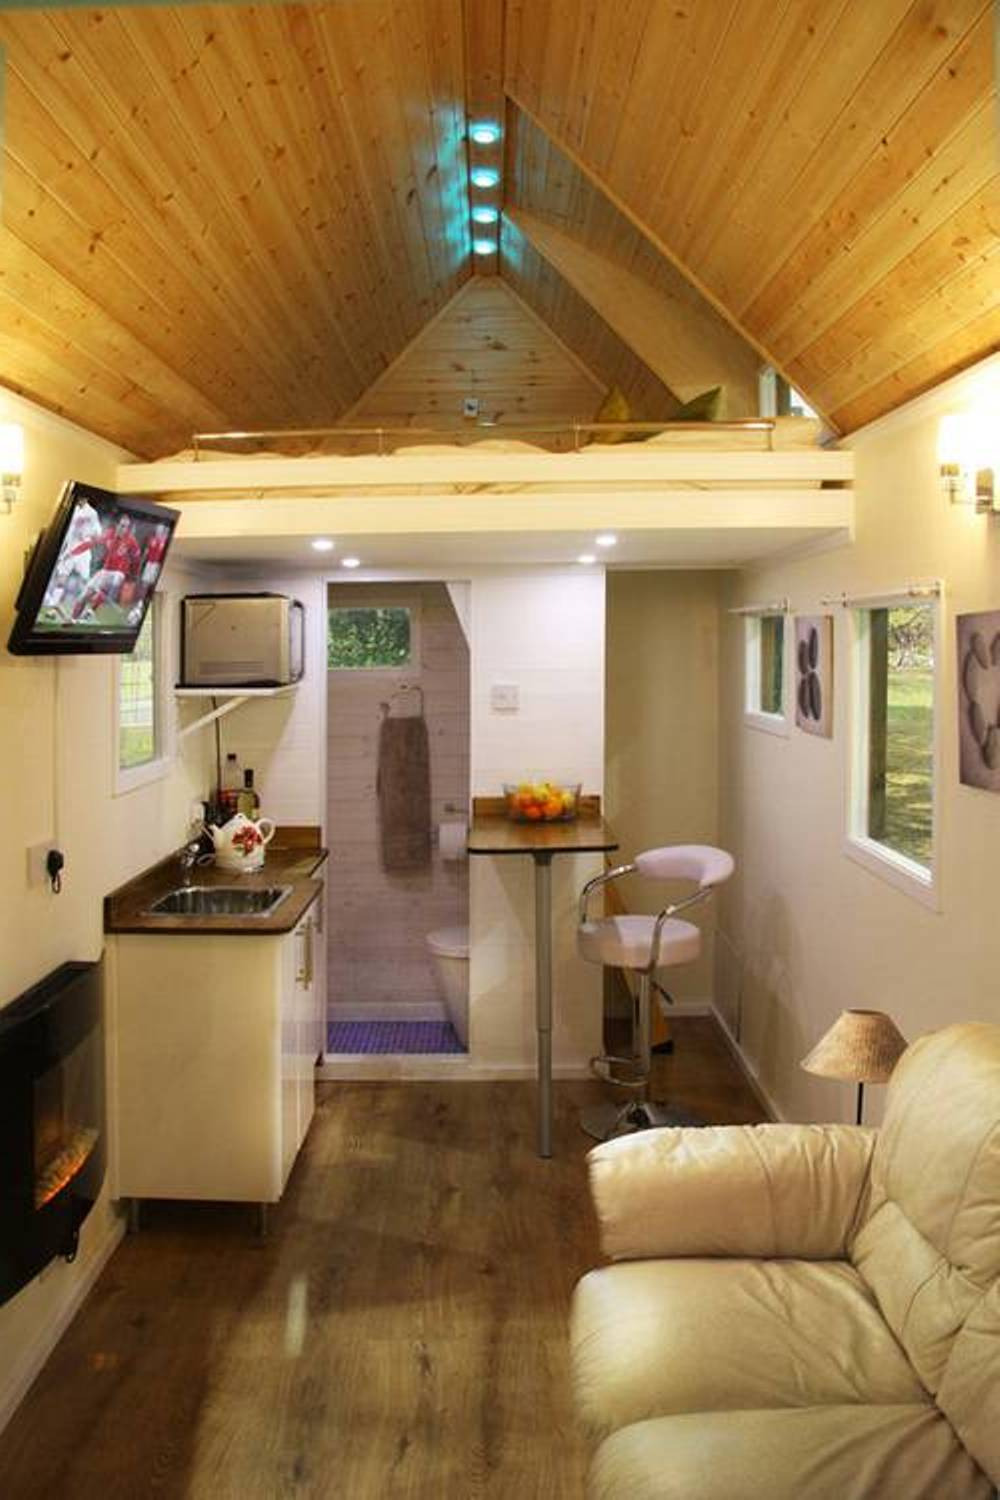 Sample Small House Design Luxury Small House Design Ideas Interior Idea for Room and